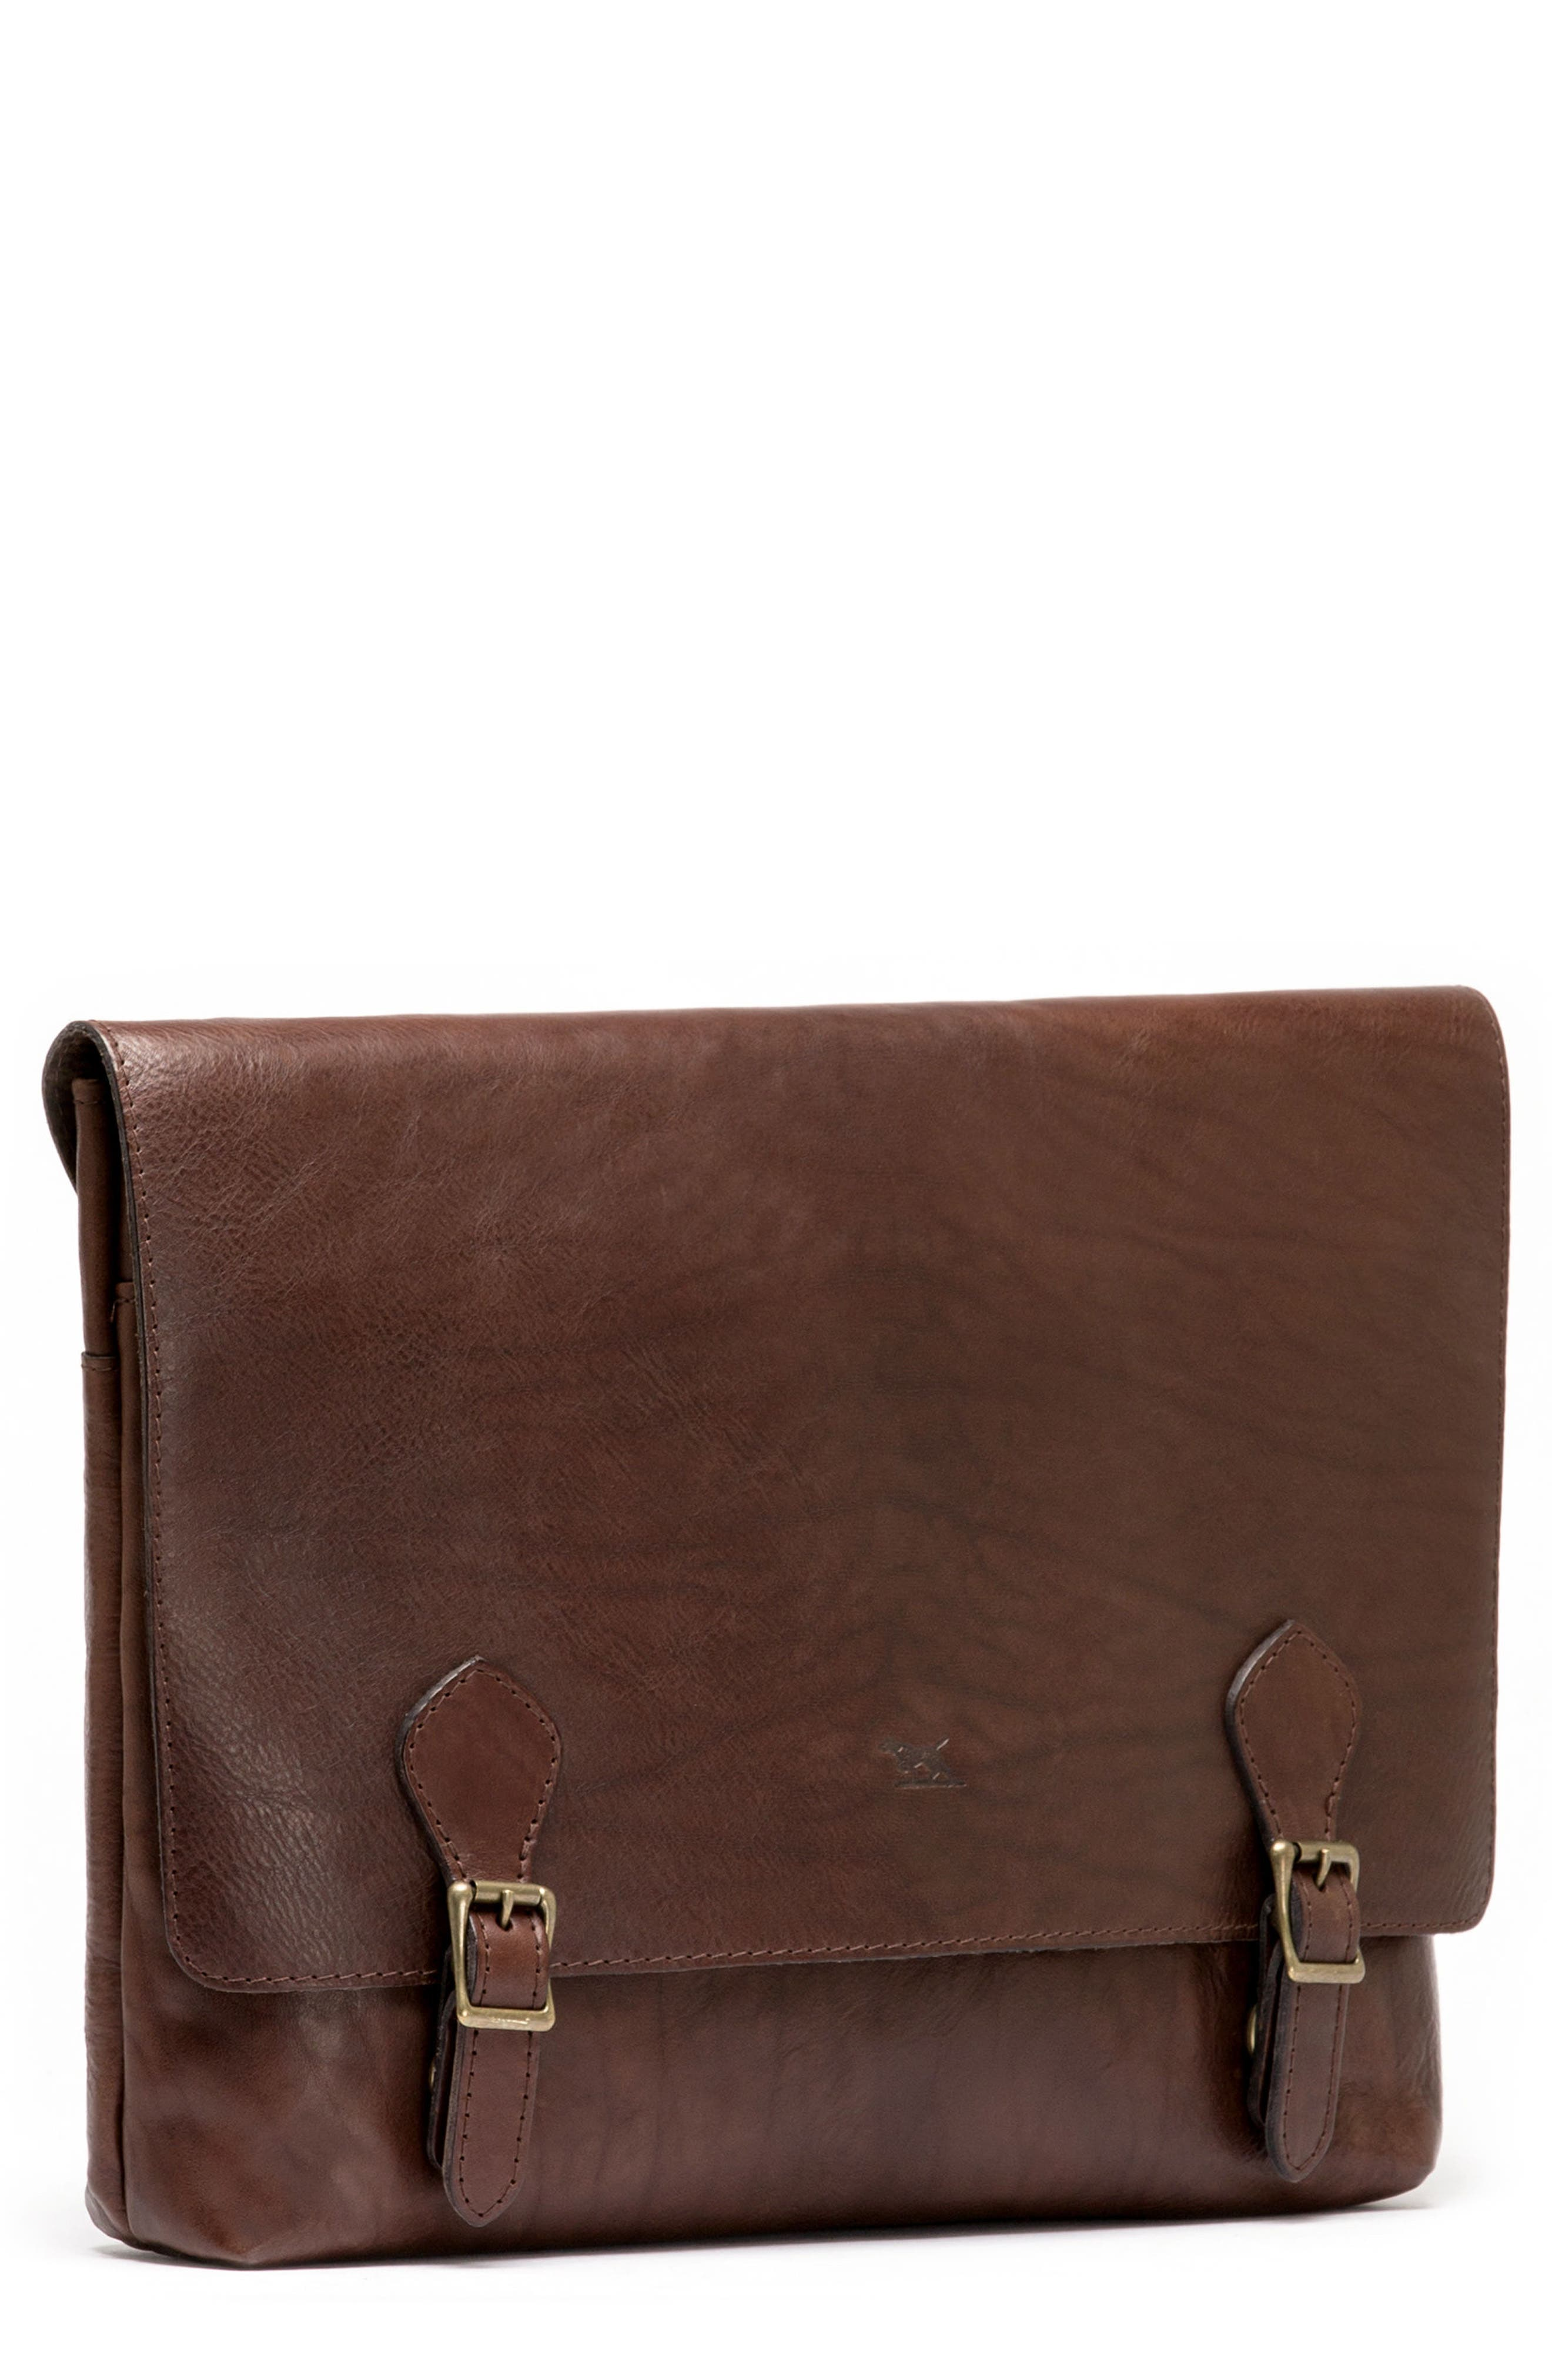 Woodstock Leather Satchel,                             Alternate thumbnail 8, color,                             Cocoa